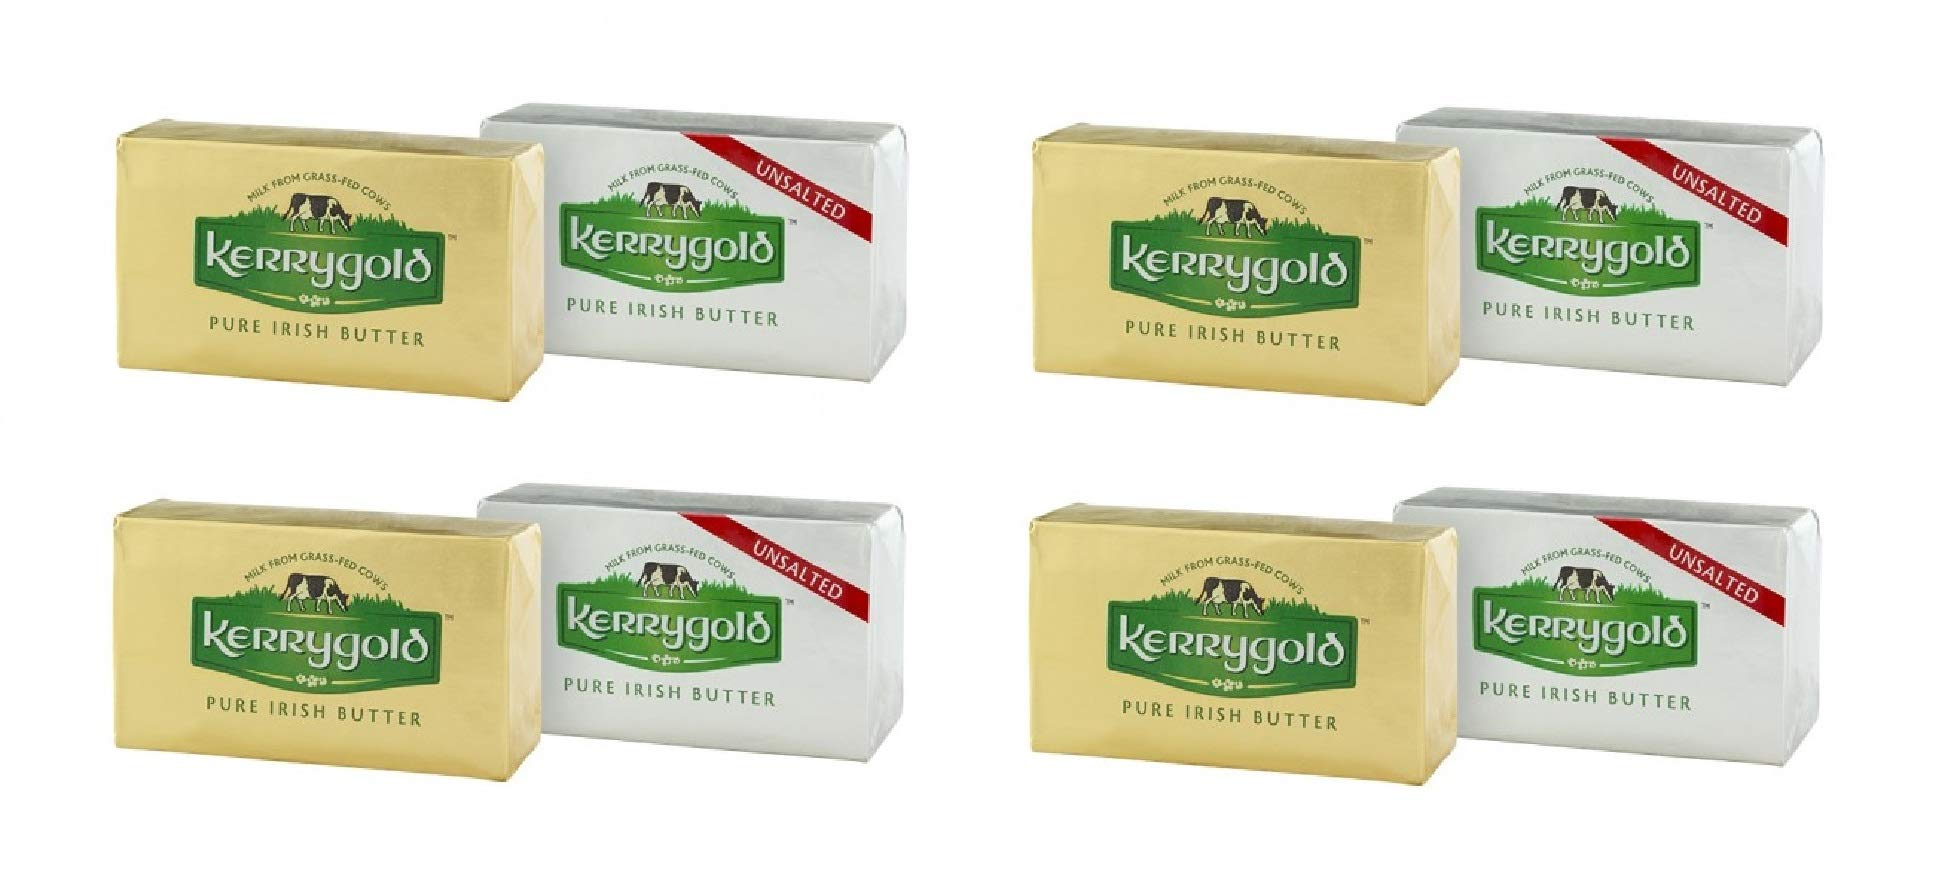 Kerrygold Pure Irish Butter Variety Pack - 4 Salted (8 ounce) and 4 Unsalted (8 ounce)